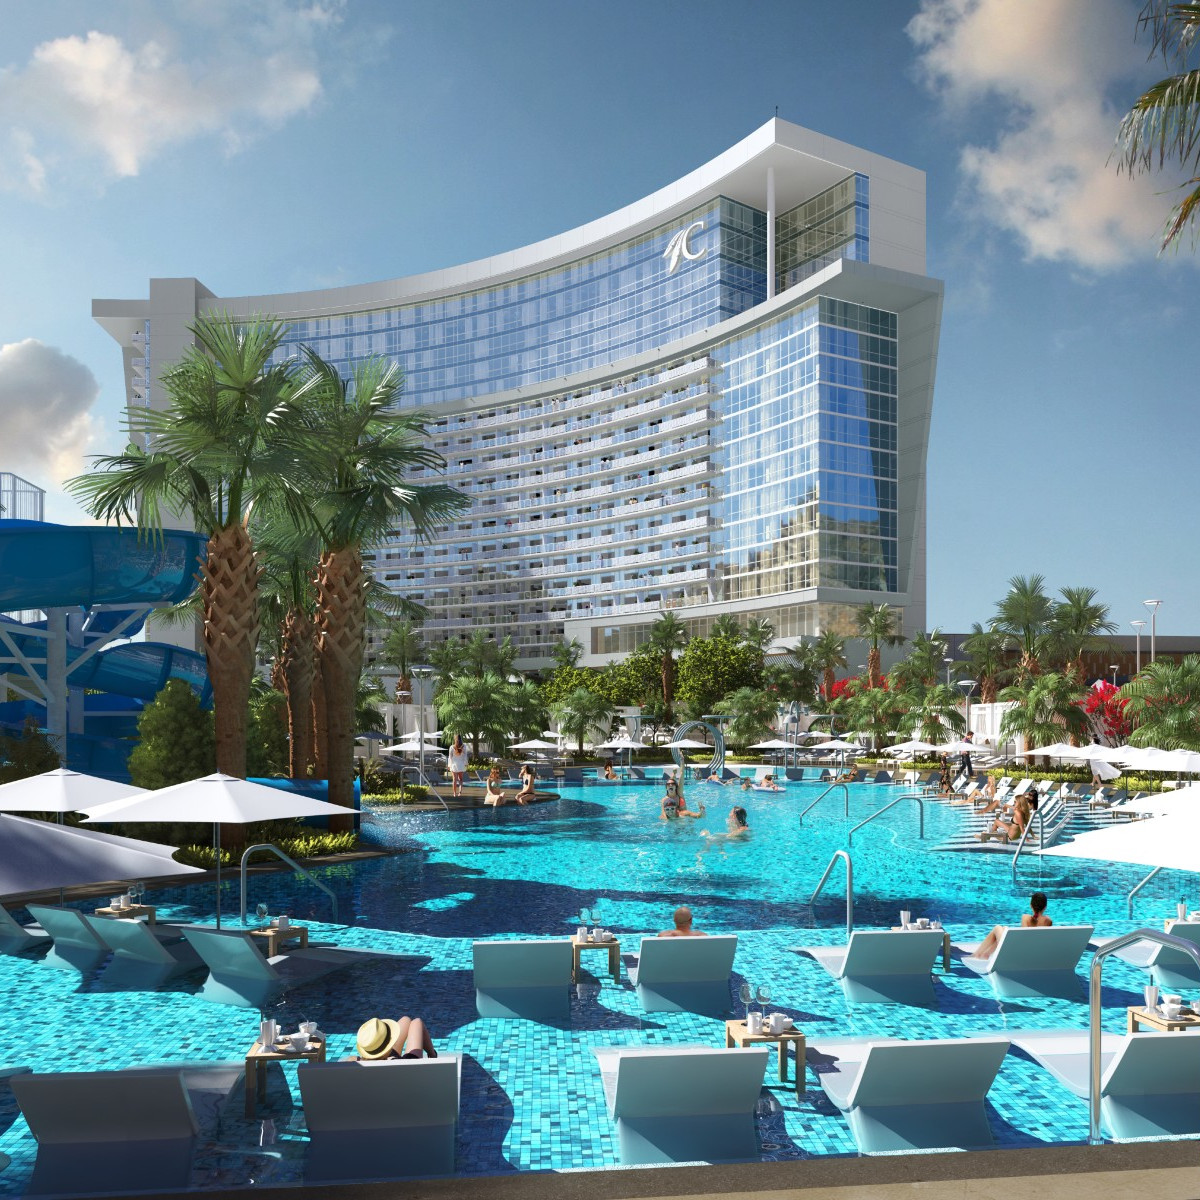 Choctaw resort casino expansion